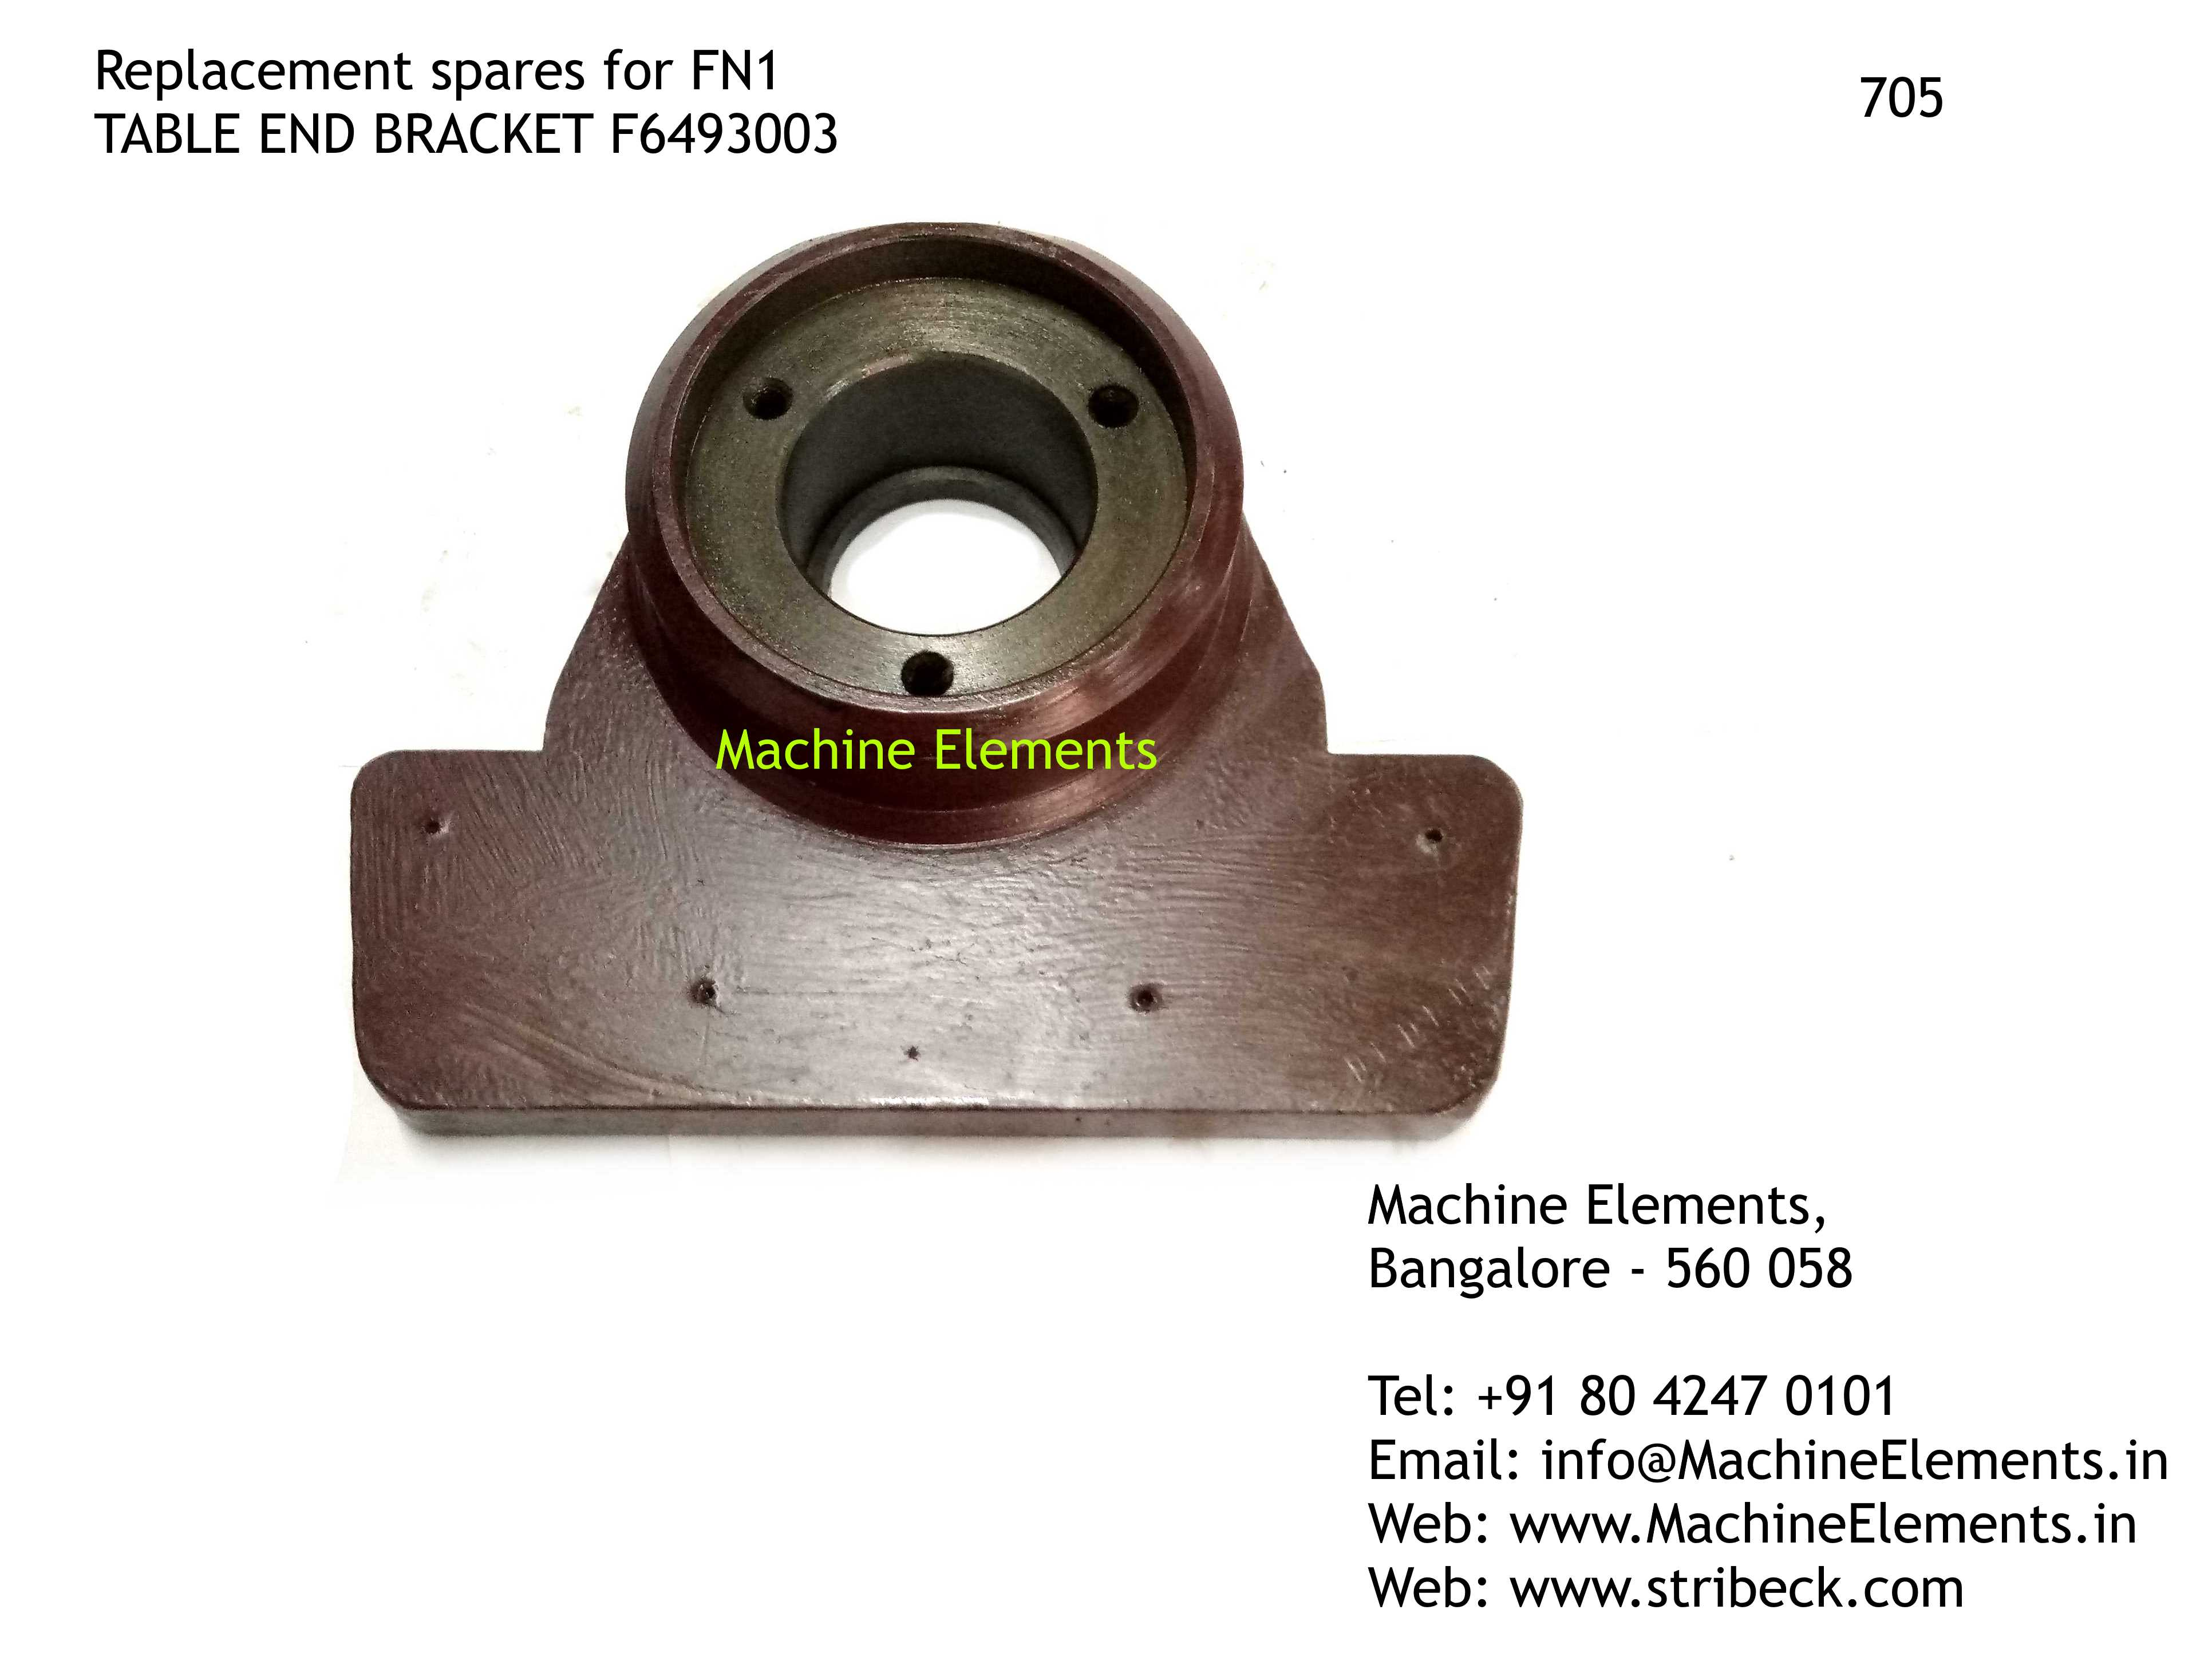 TABLE END BRACKET, F6493003